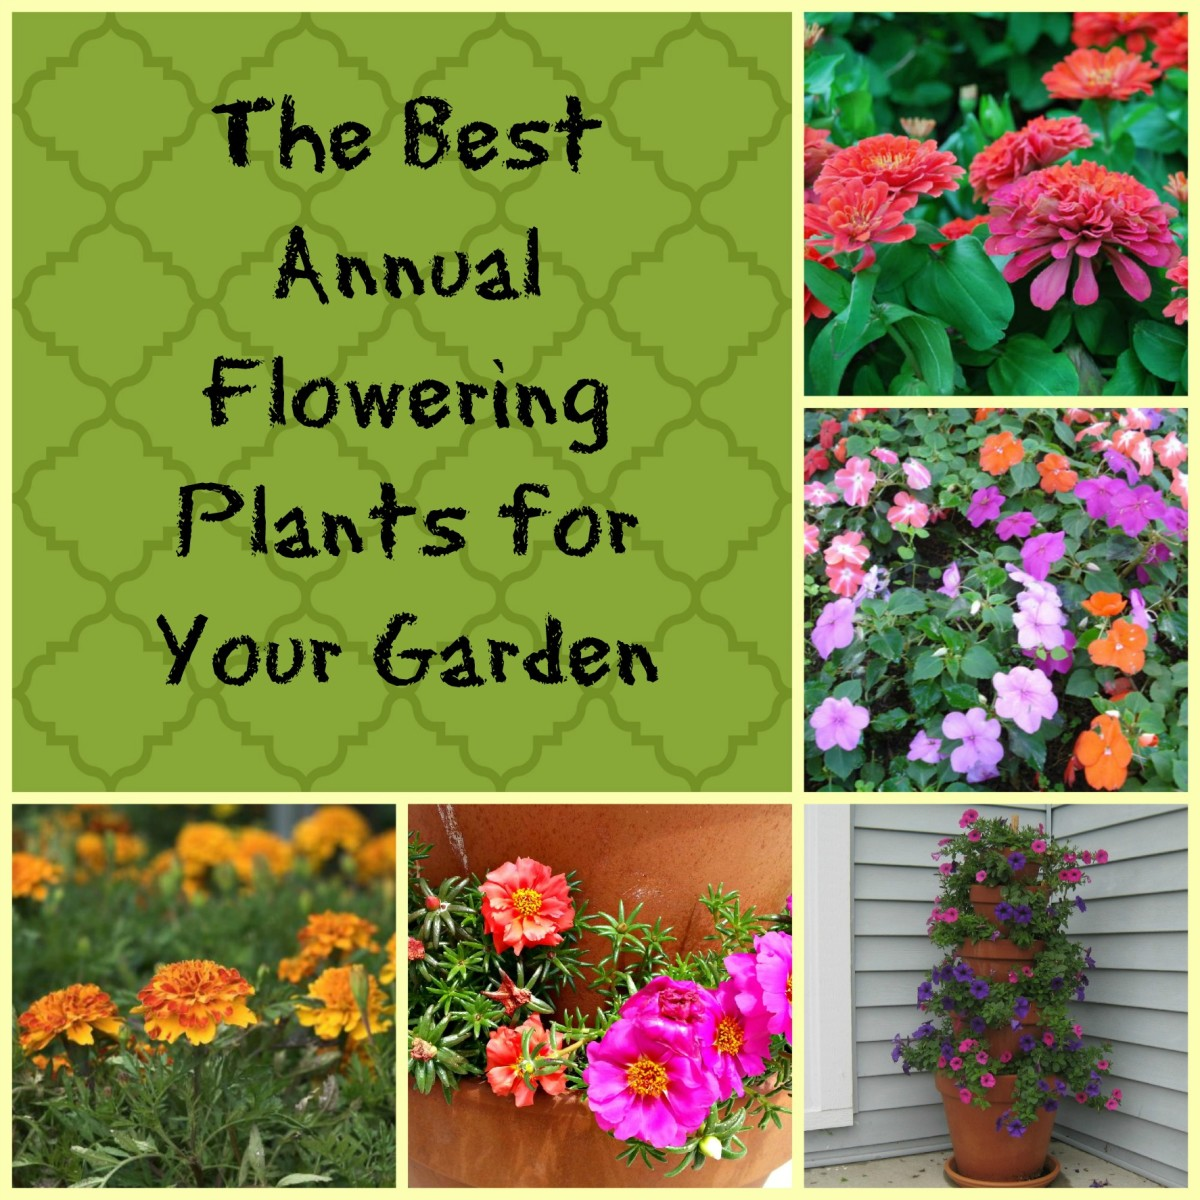 The top 5 annual flowering plants for your garden.